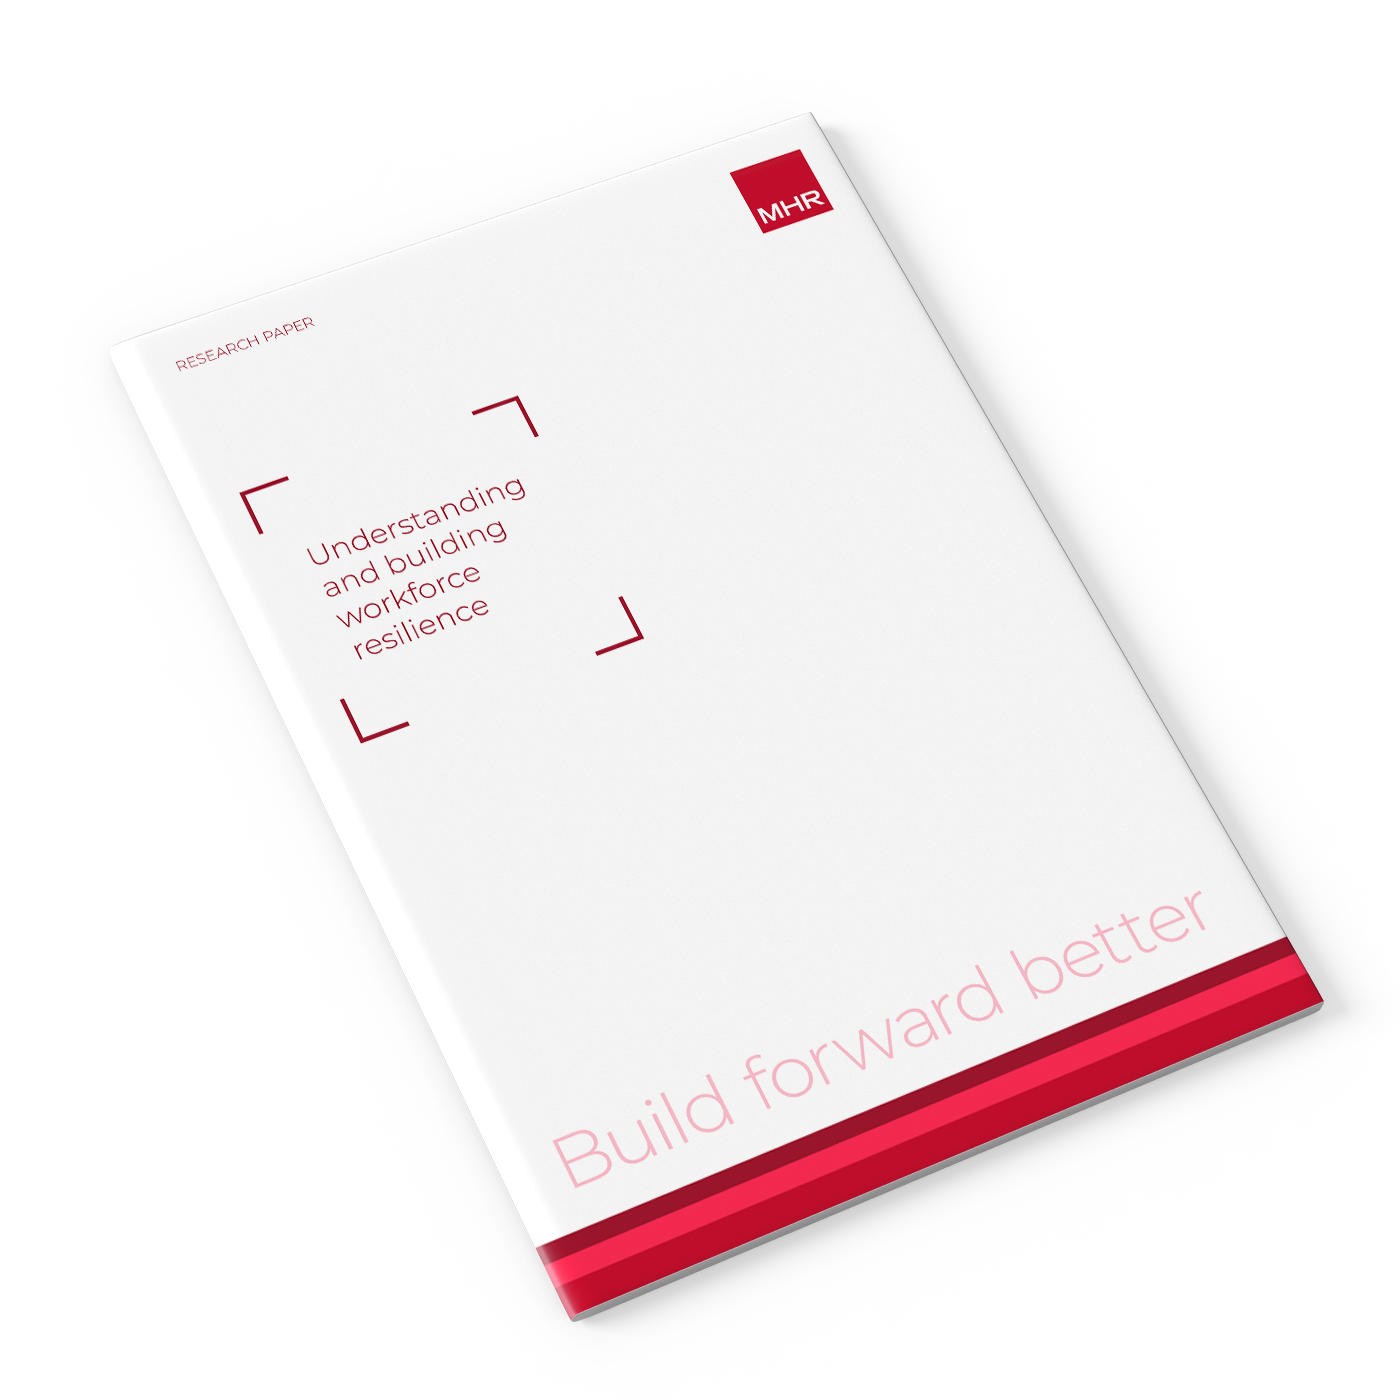 Workforce Resilience Research Report Mock-up from MHR